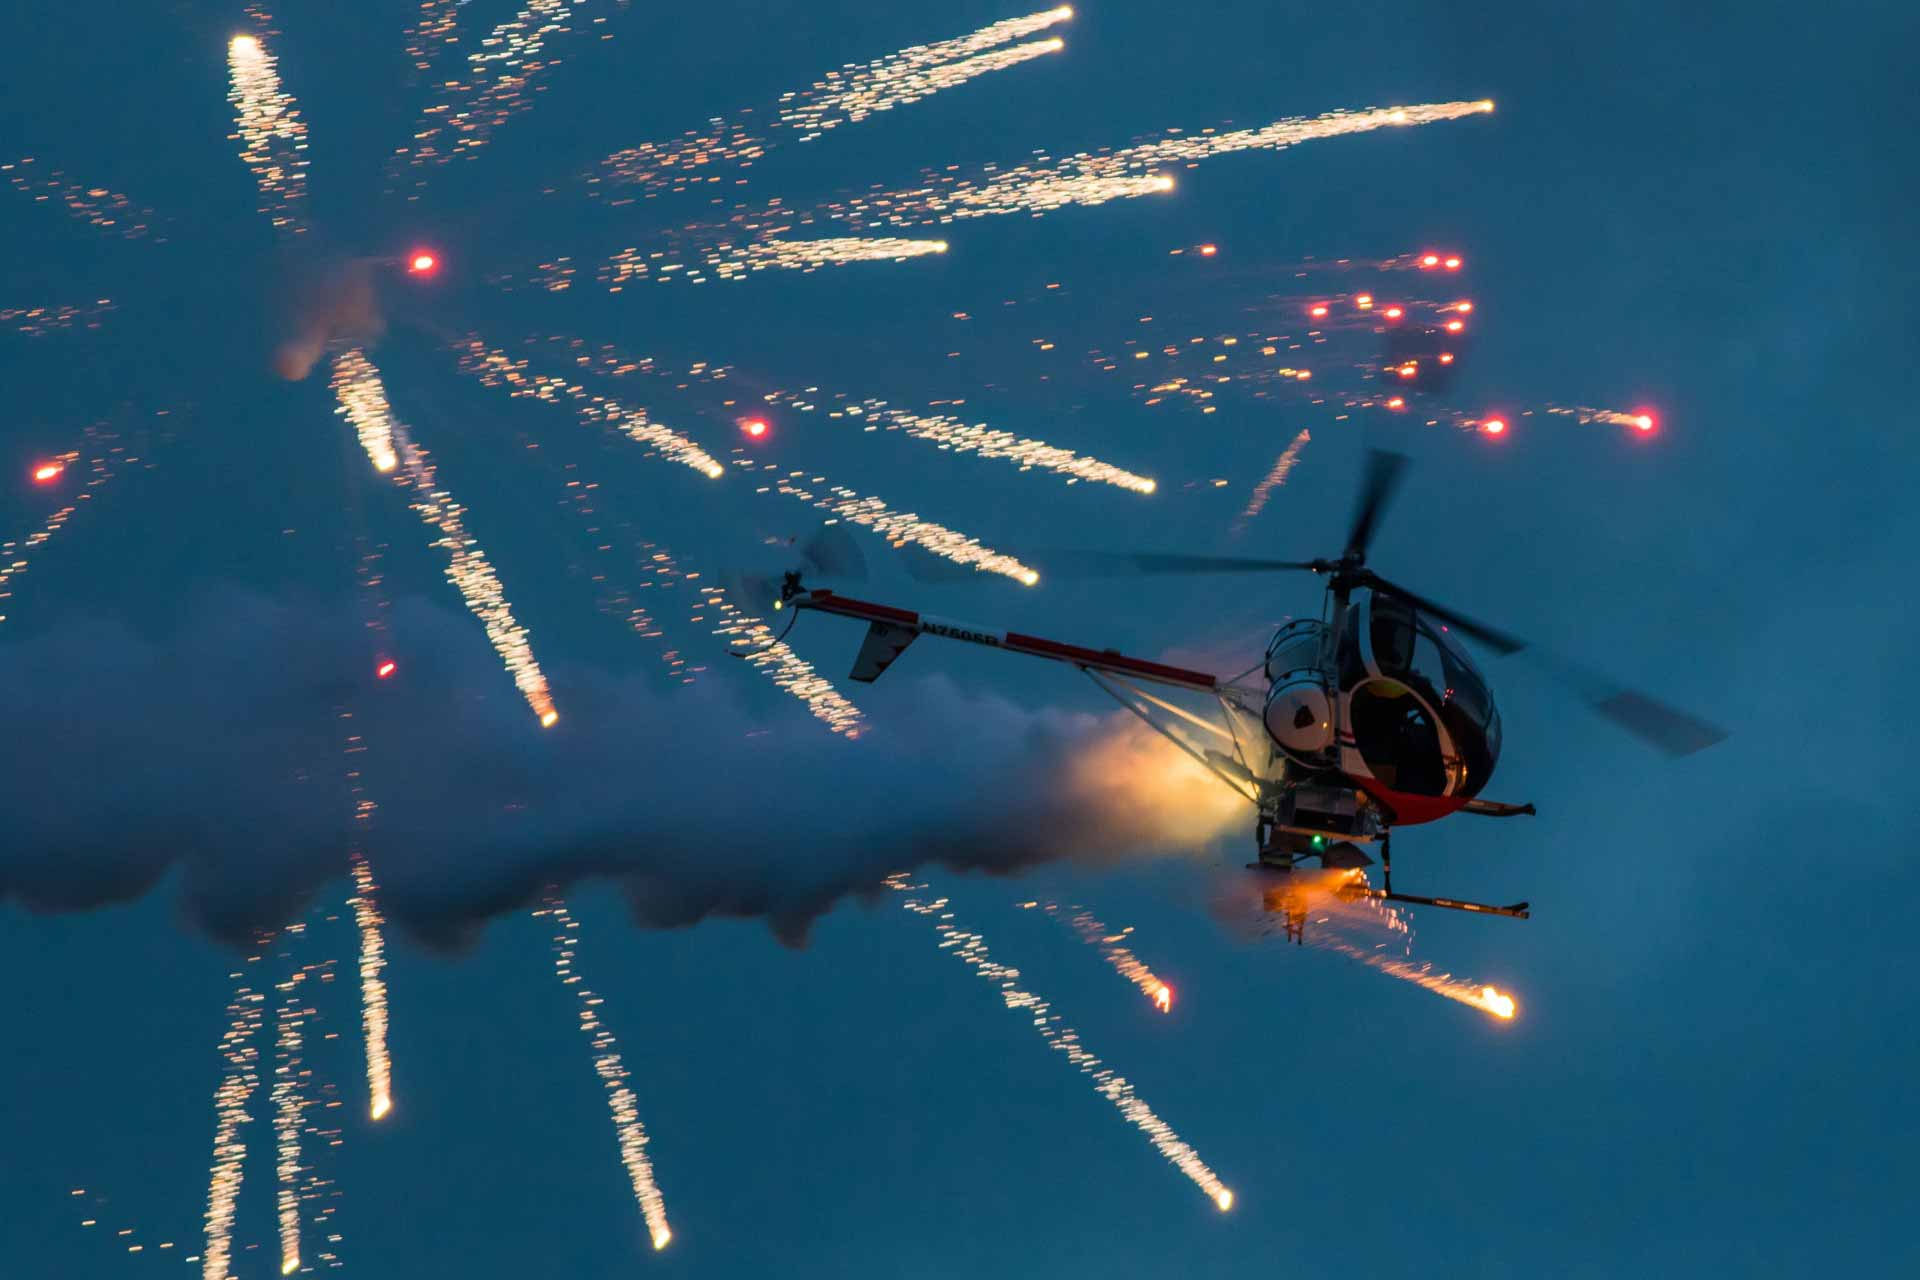 Epic helicopter show firing off flares and performing maneuvers during the night show